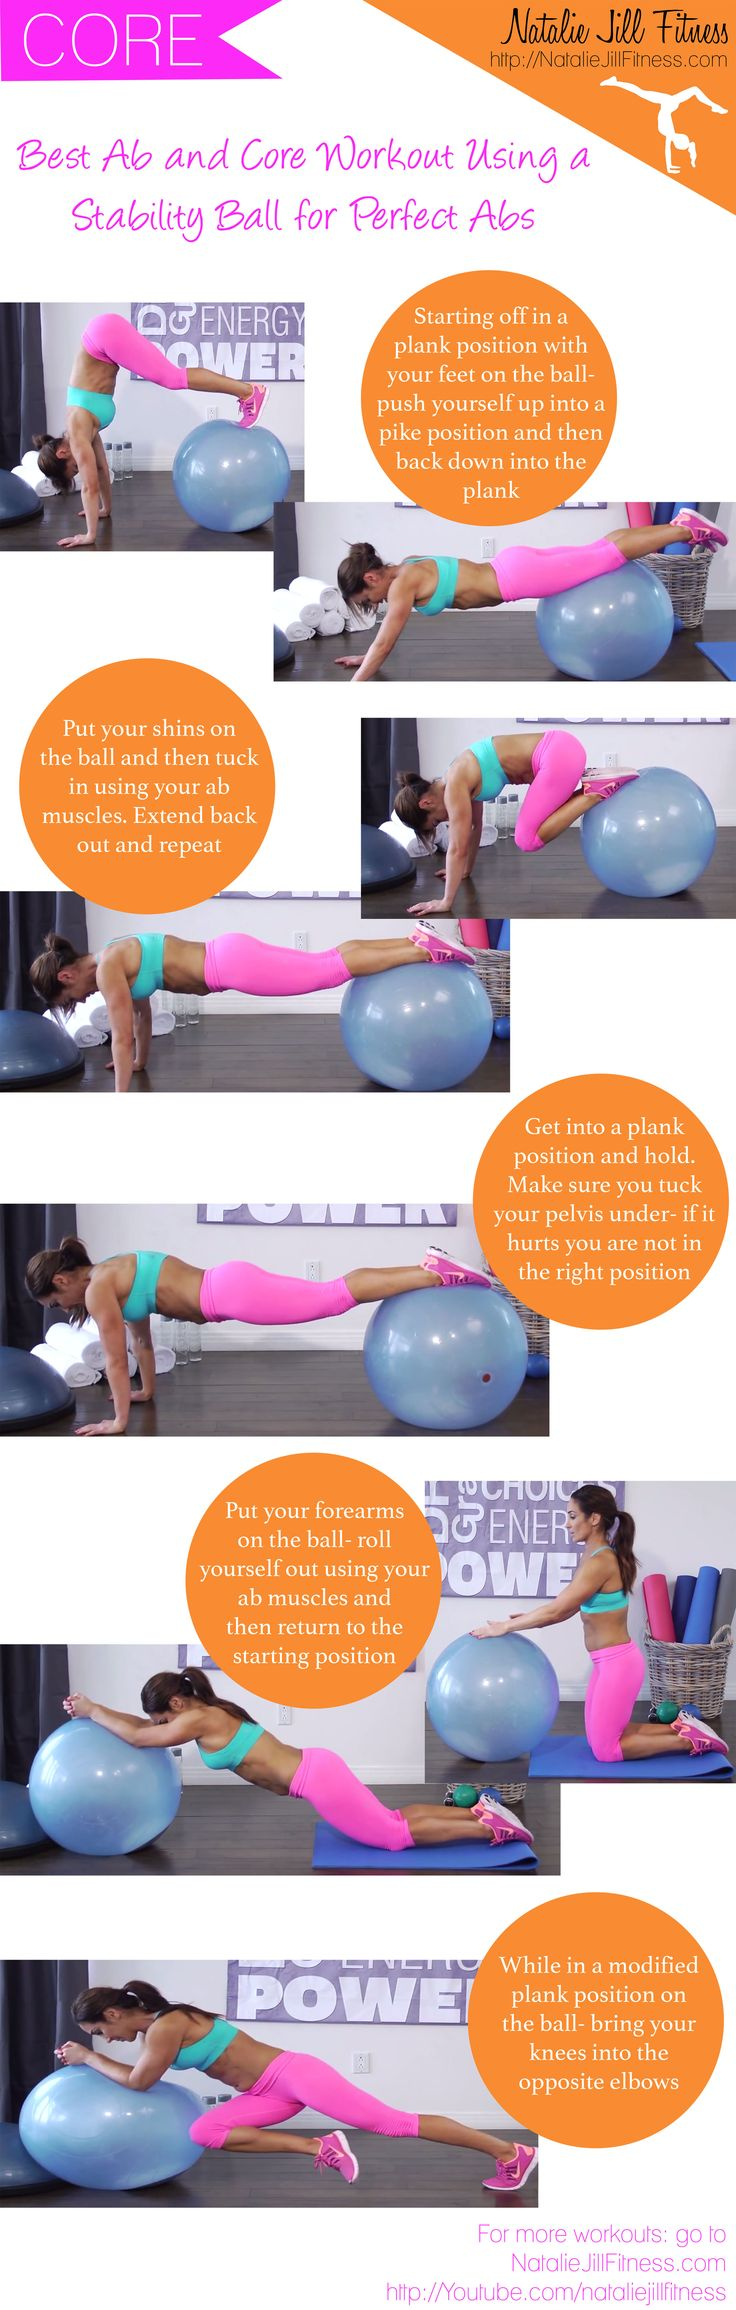 Best ab and core workout using a stability ball! Click on the image to view the whole workout :)